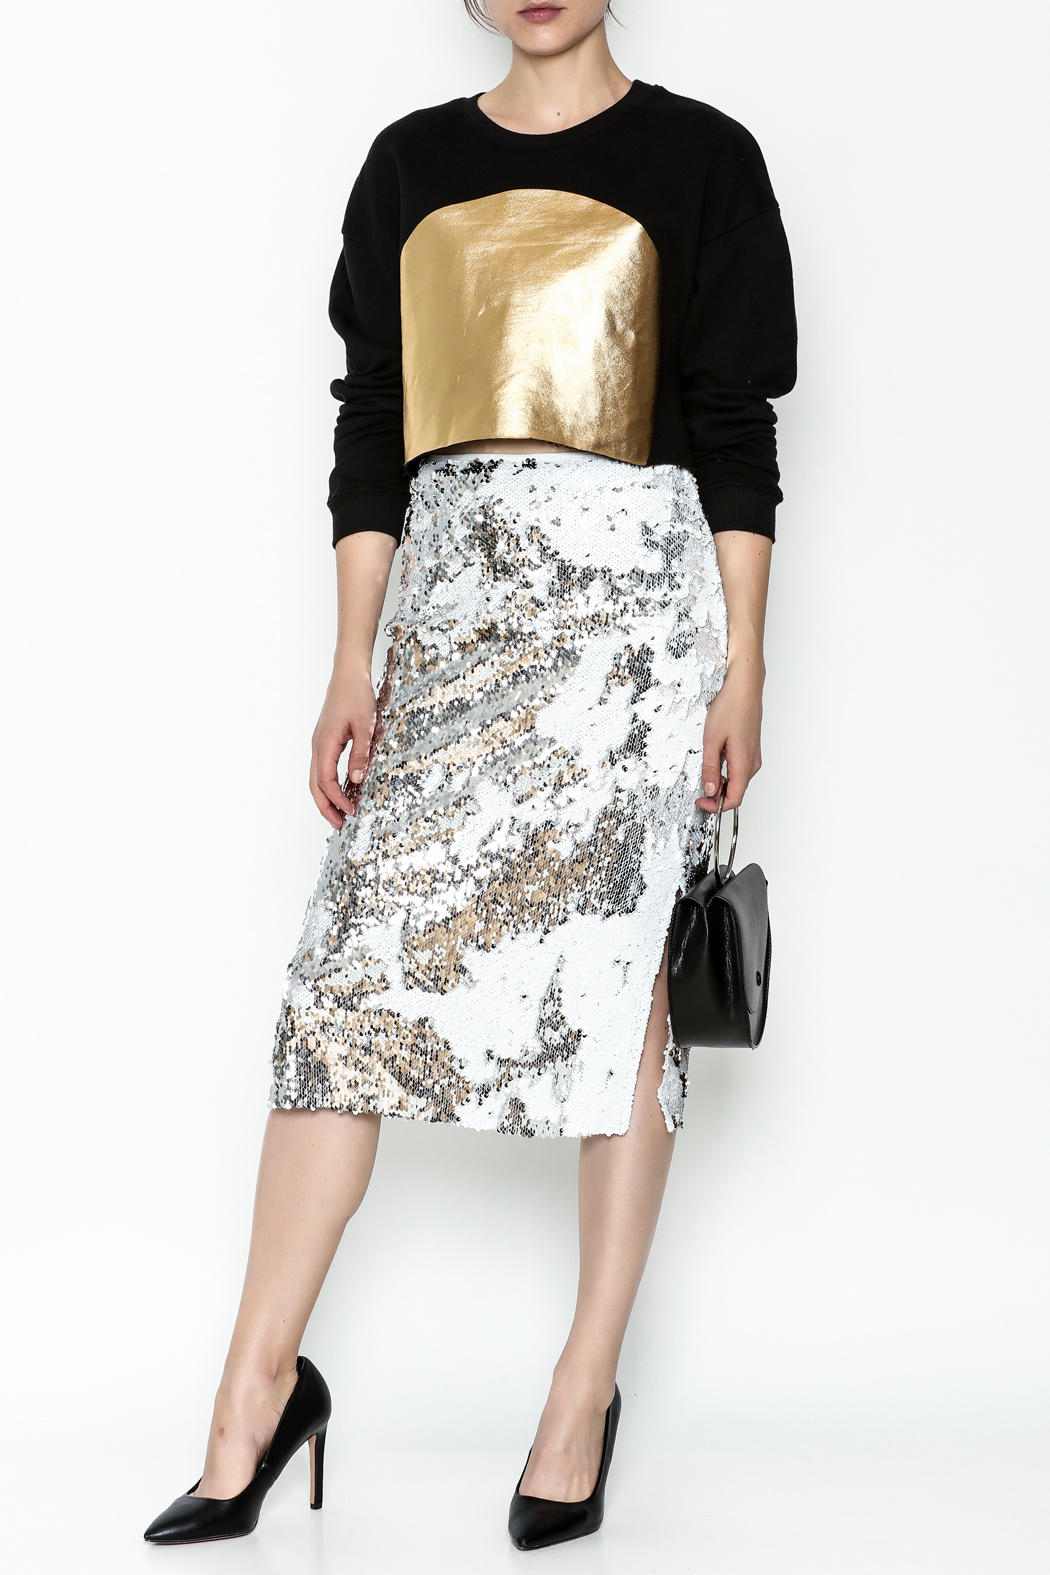 LIFTED Boutique Sequin Skirt - Side Cropped Image